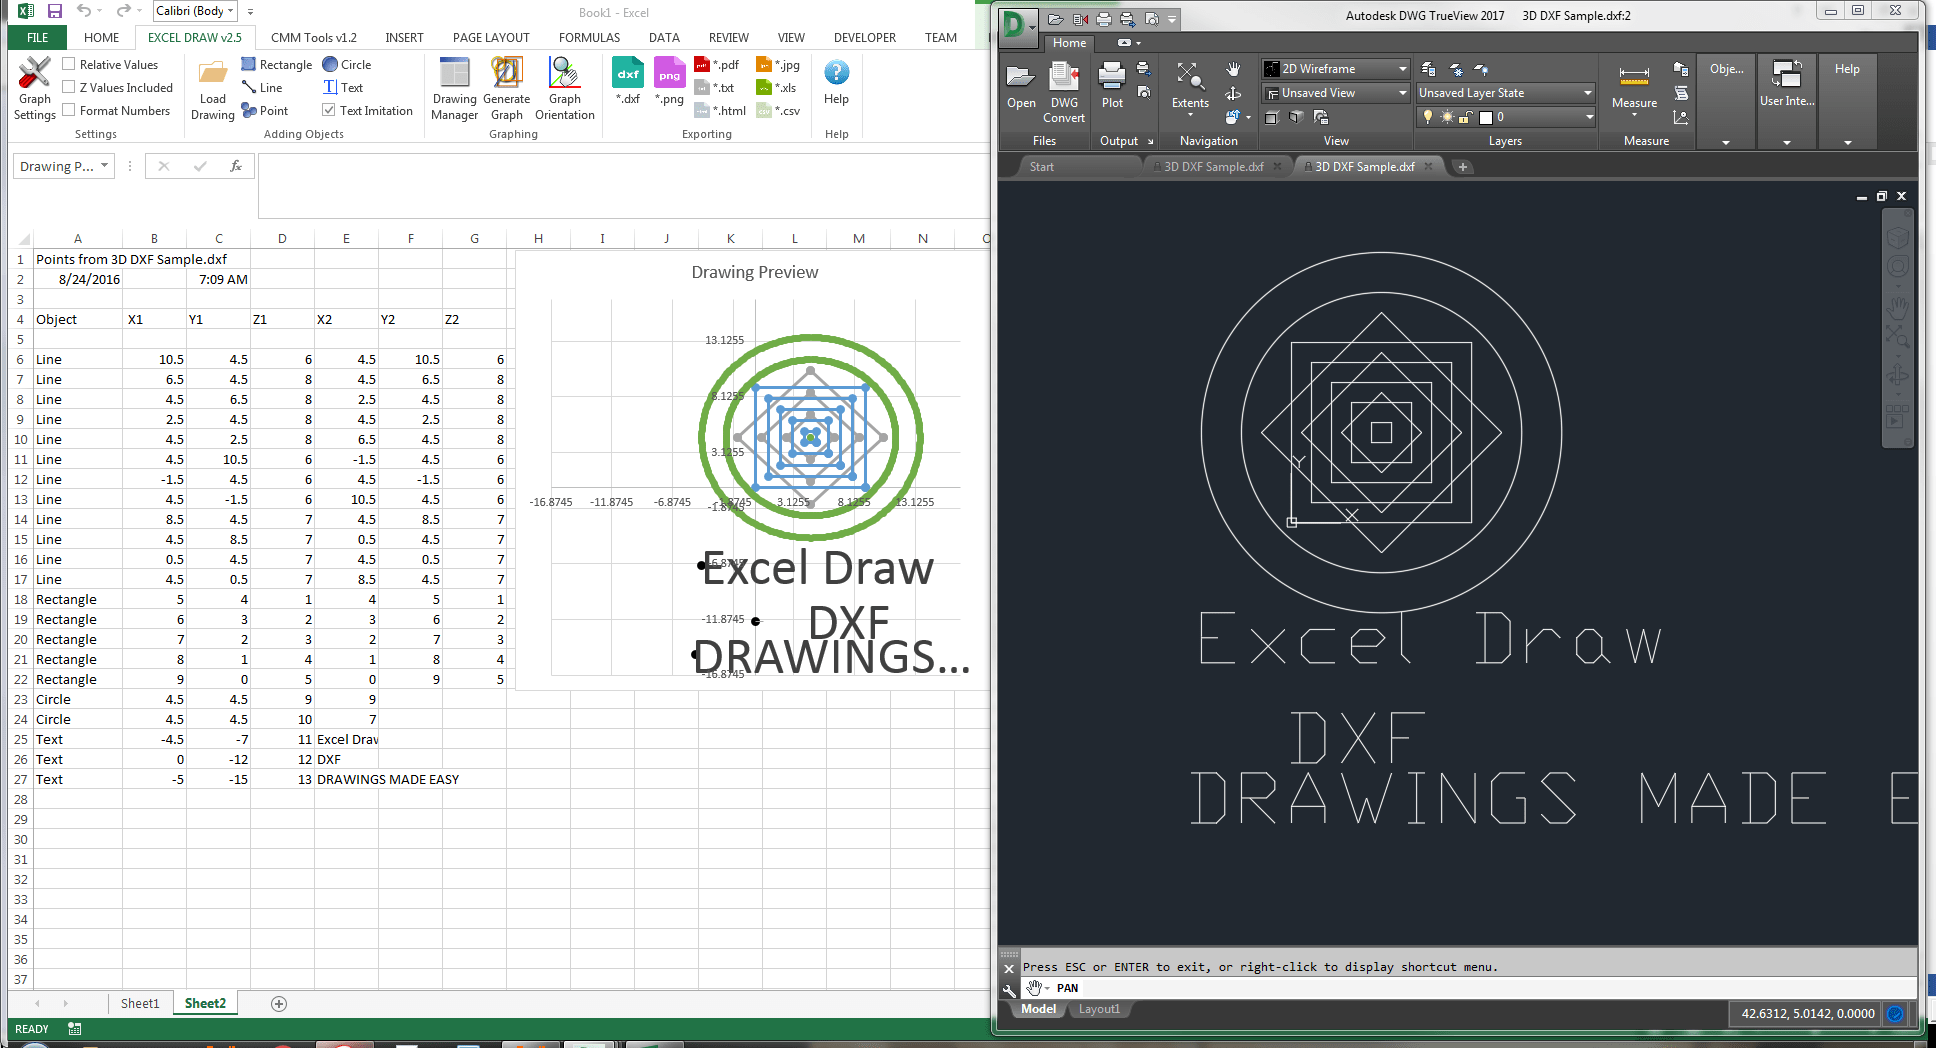 Excel Draw - Create and draw DXF files inside Excel